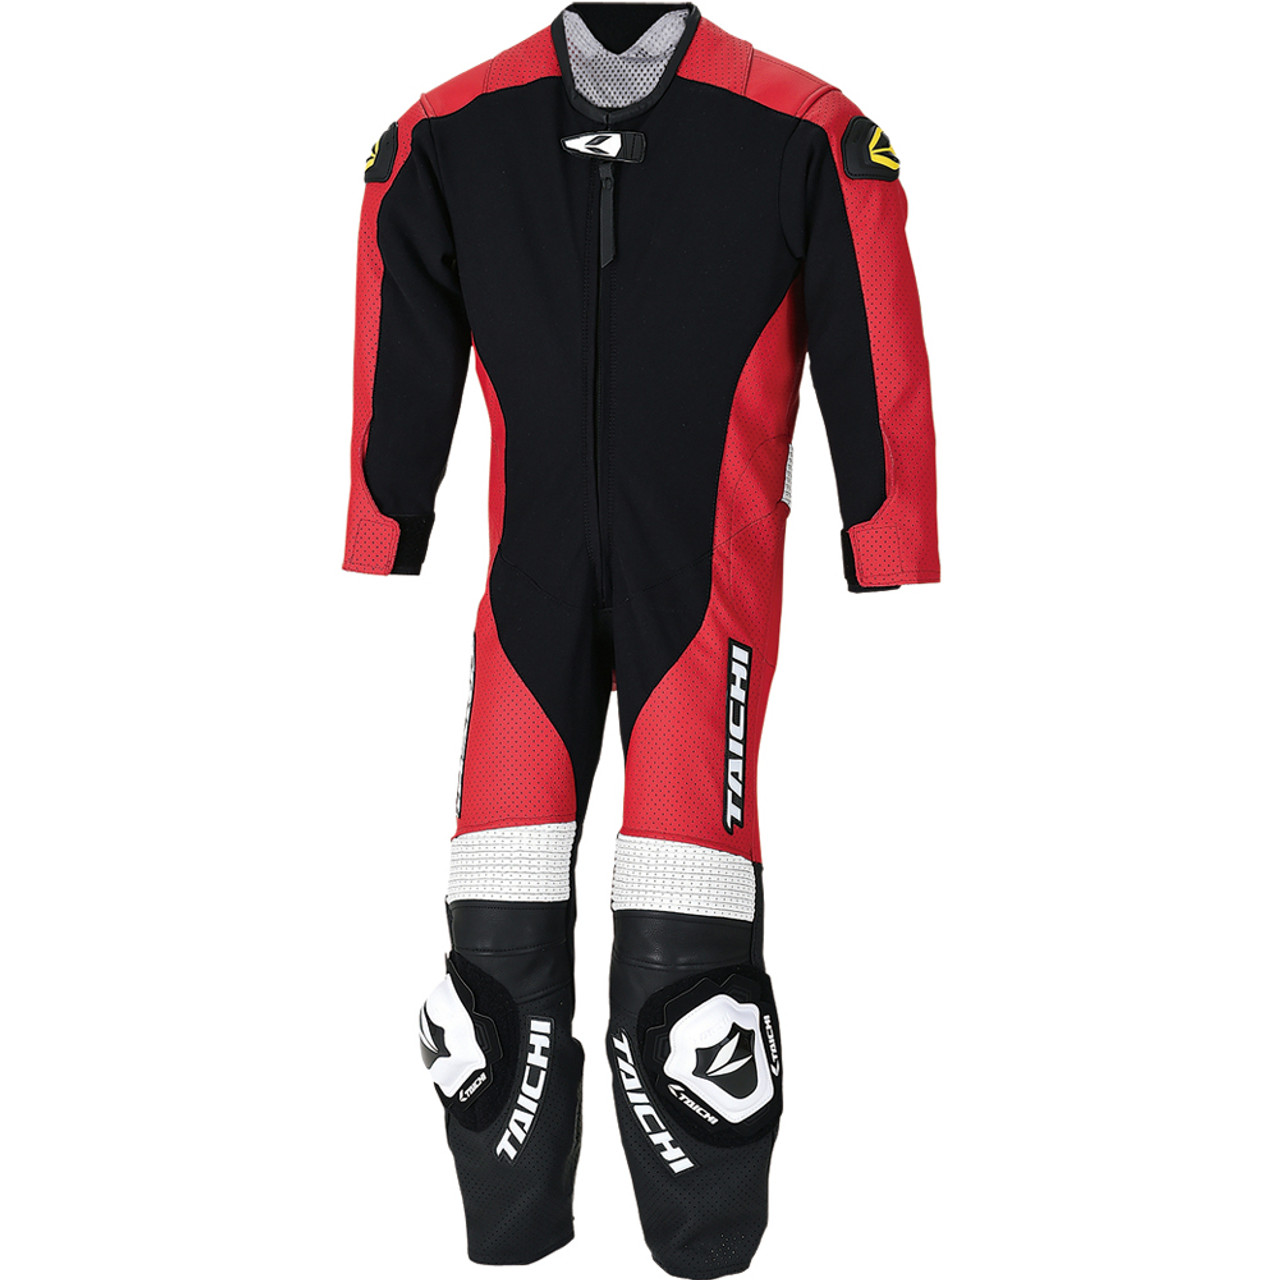 Rs Taichi J022 Kids One Piece Leather Motorcycle Race Suit